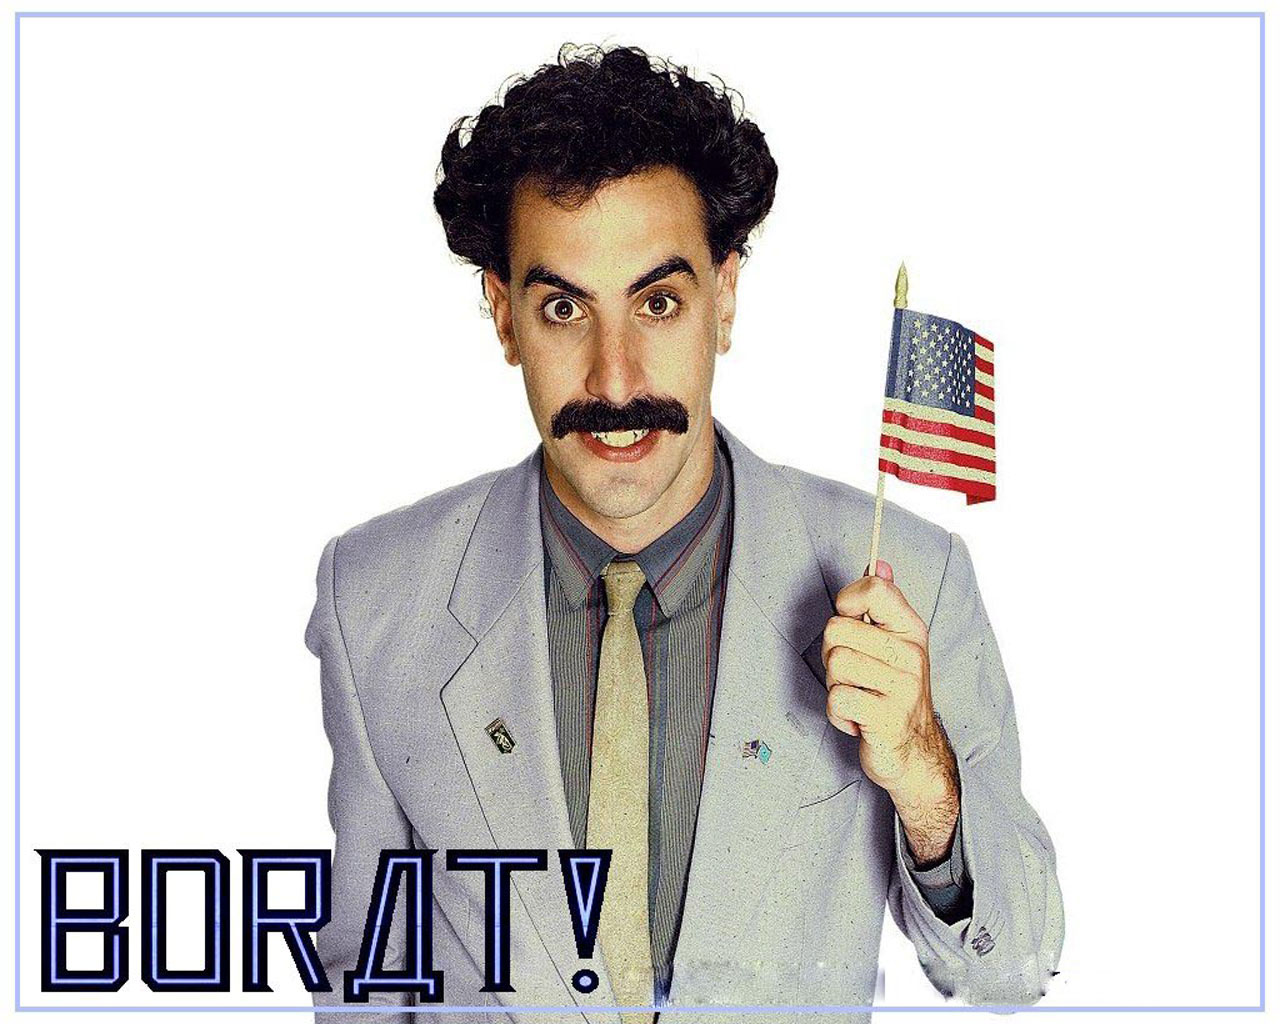 8e719 1d borat (sacha baron cohen) and wife give $1 million to help syrian